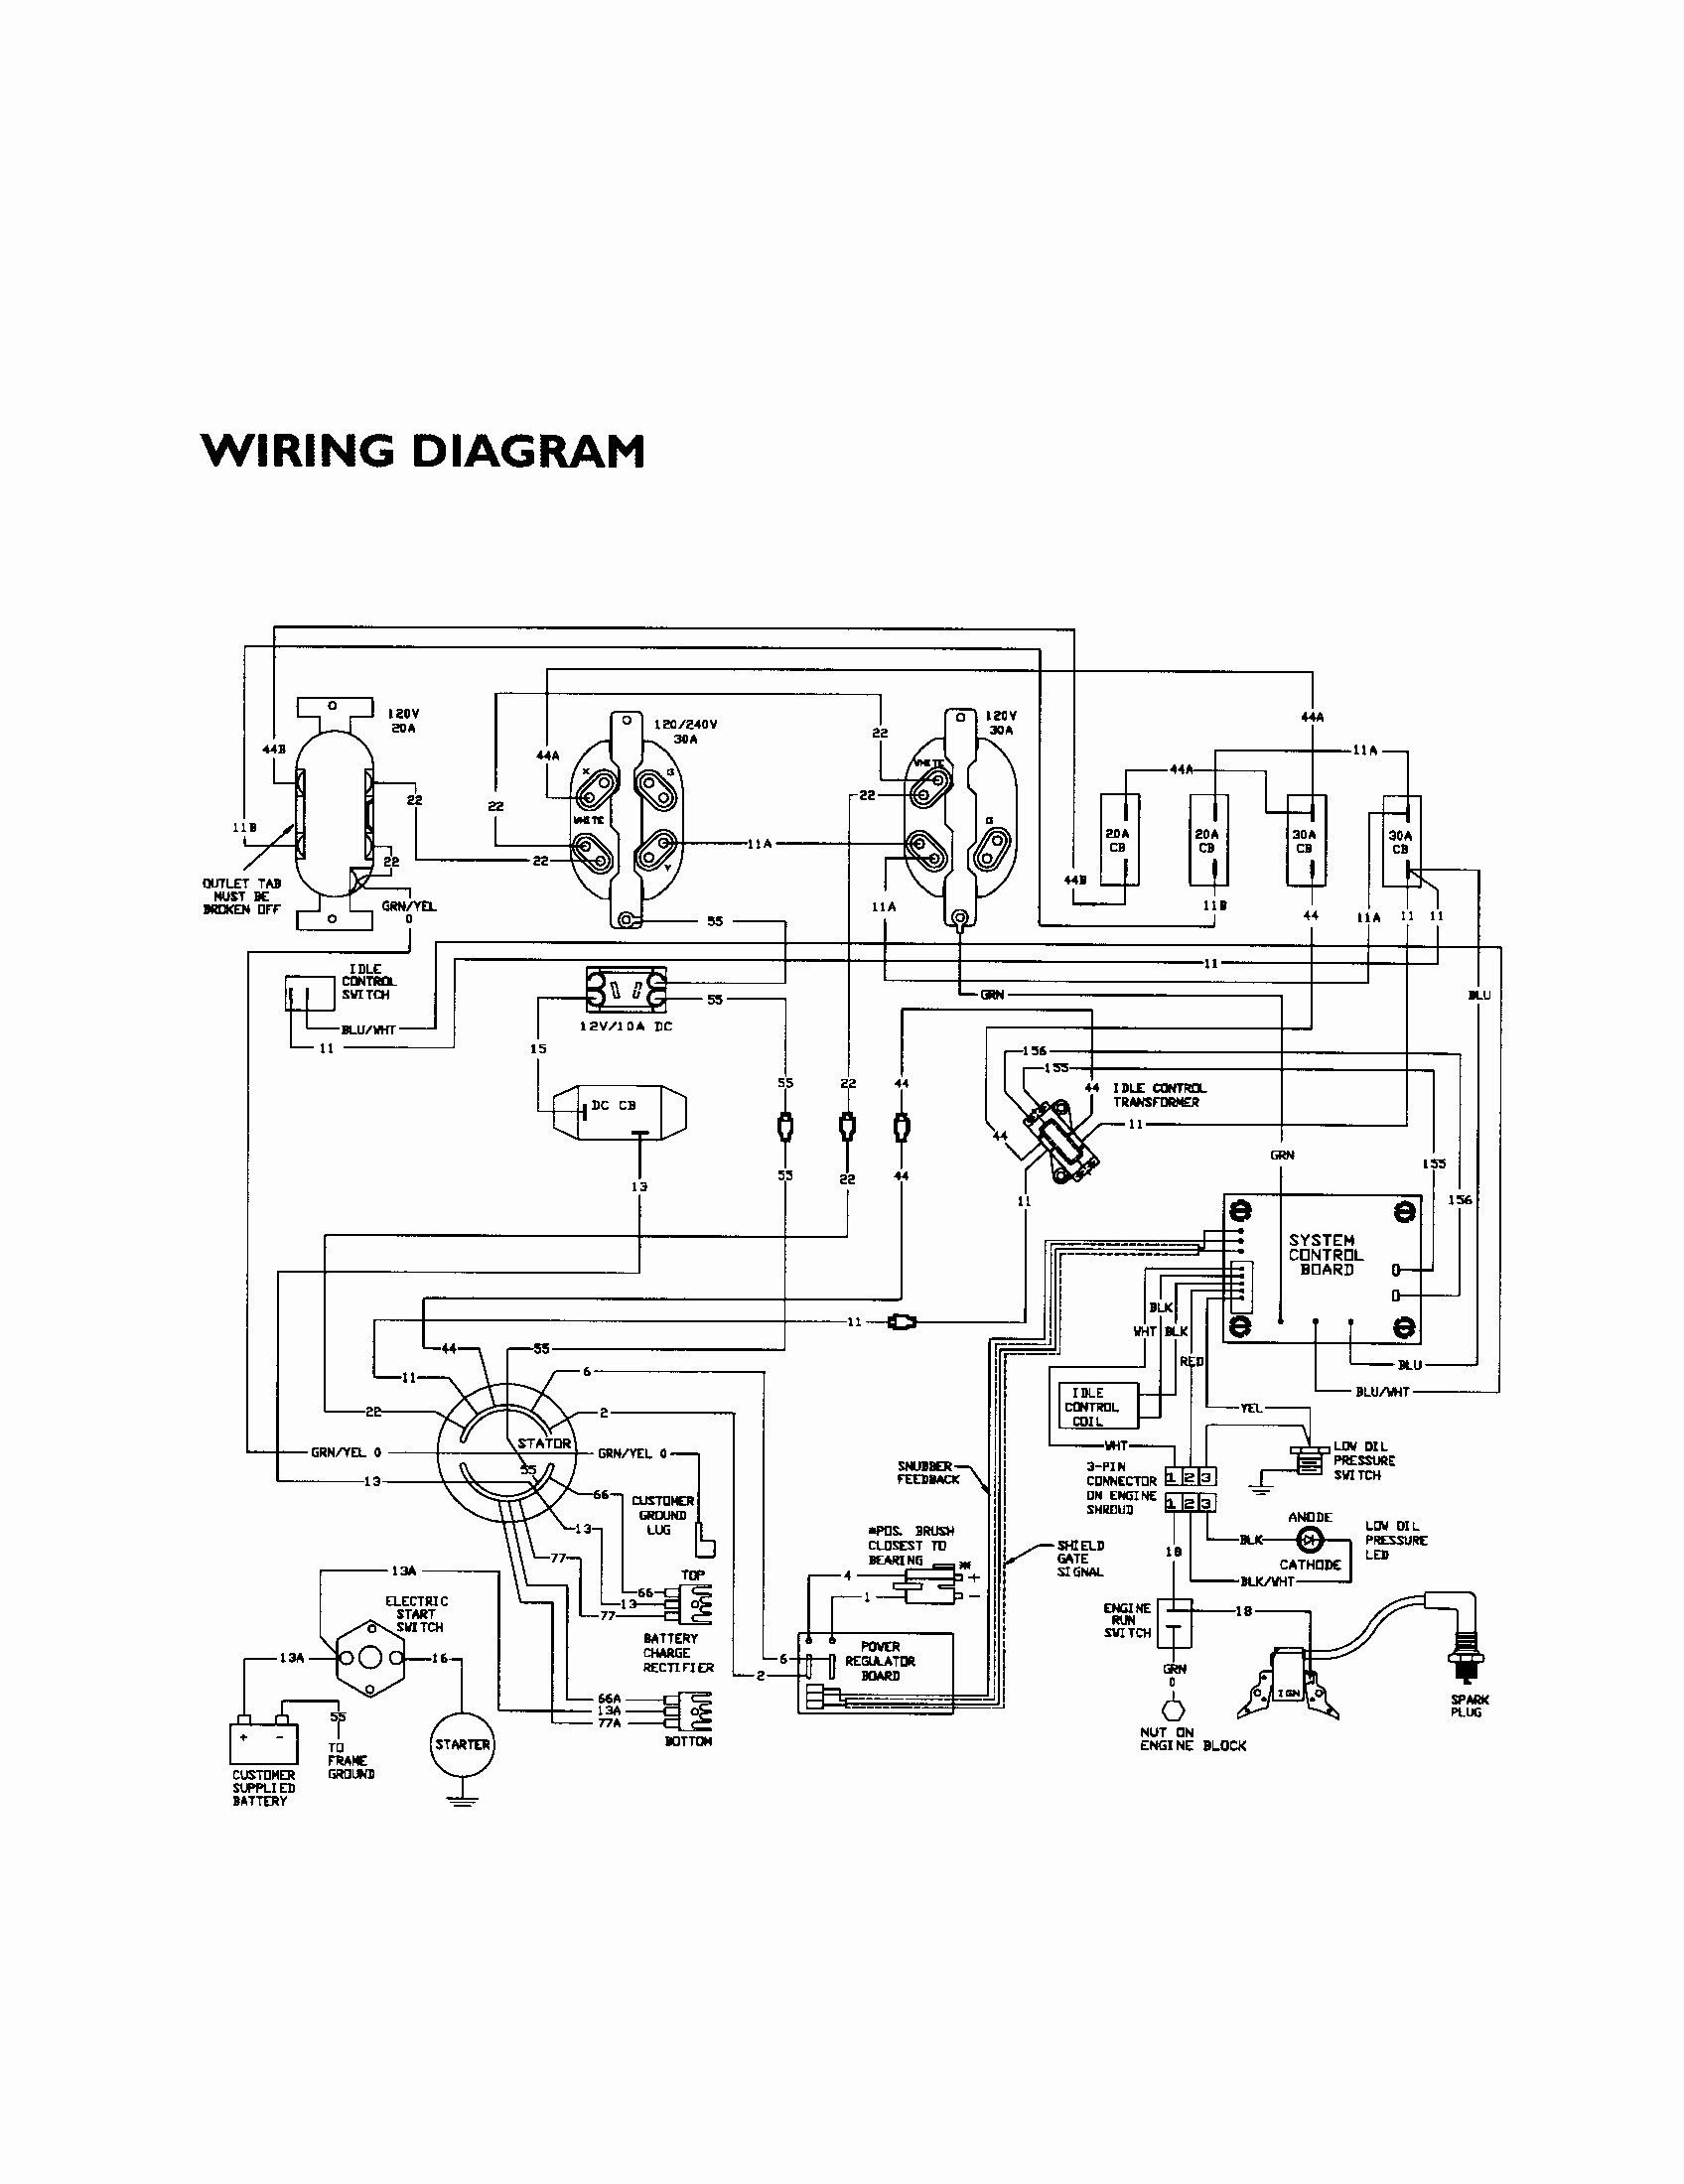 Unique Wiring Diagram Backup Generator Diagram